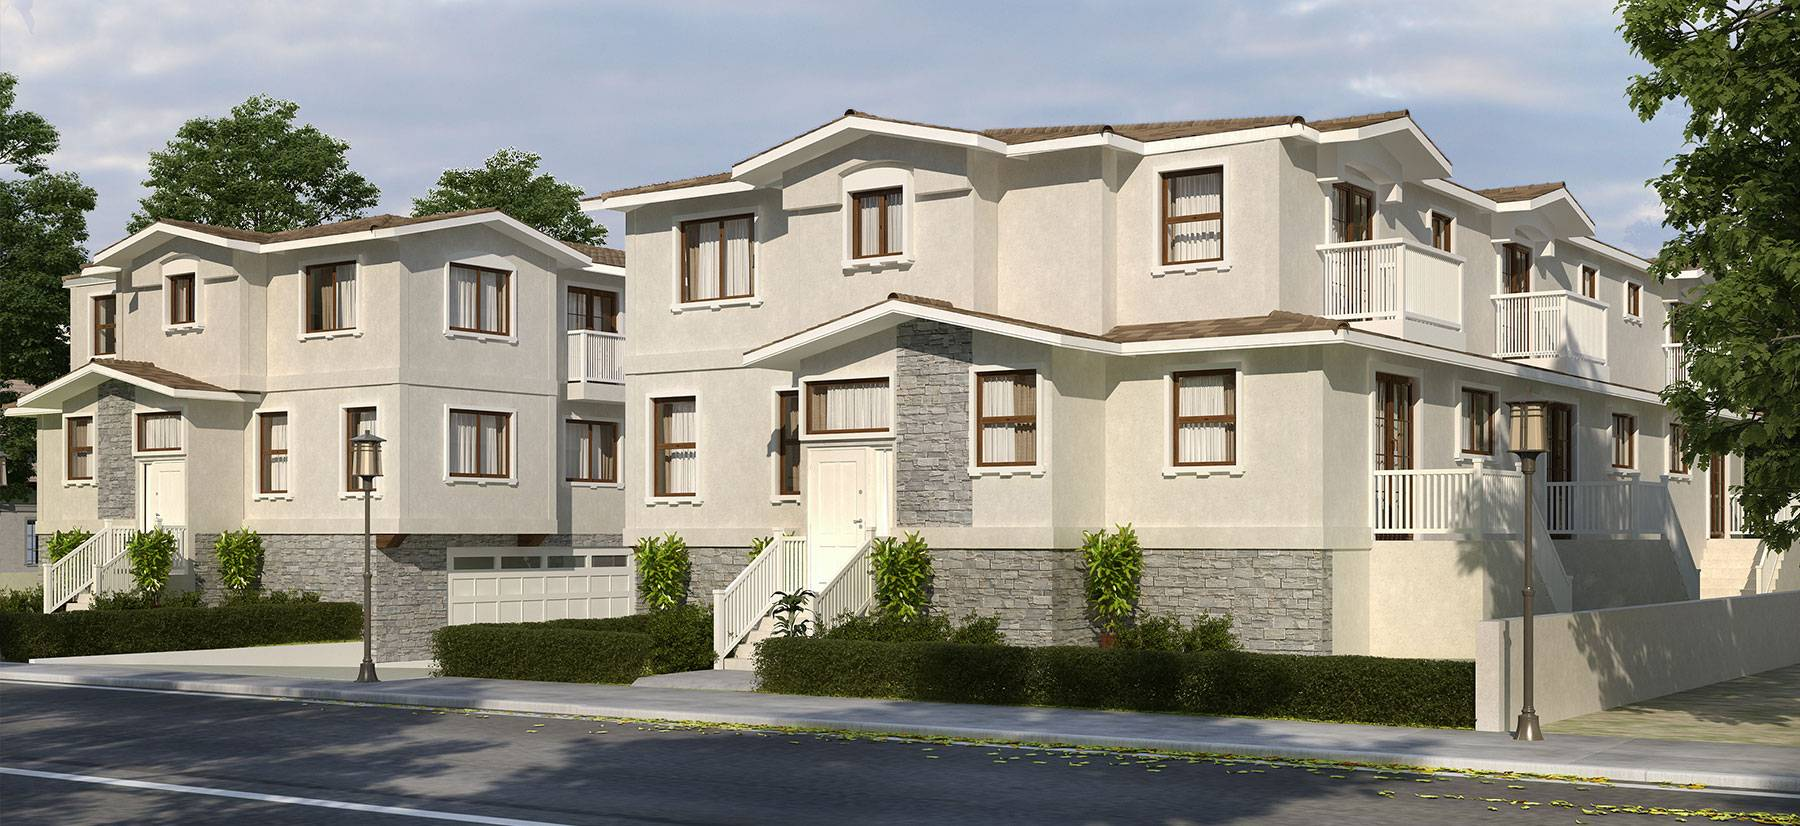 sample multi-family housing project by the City government of Gilroy